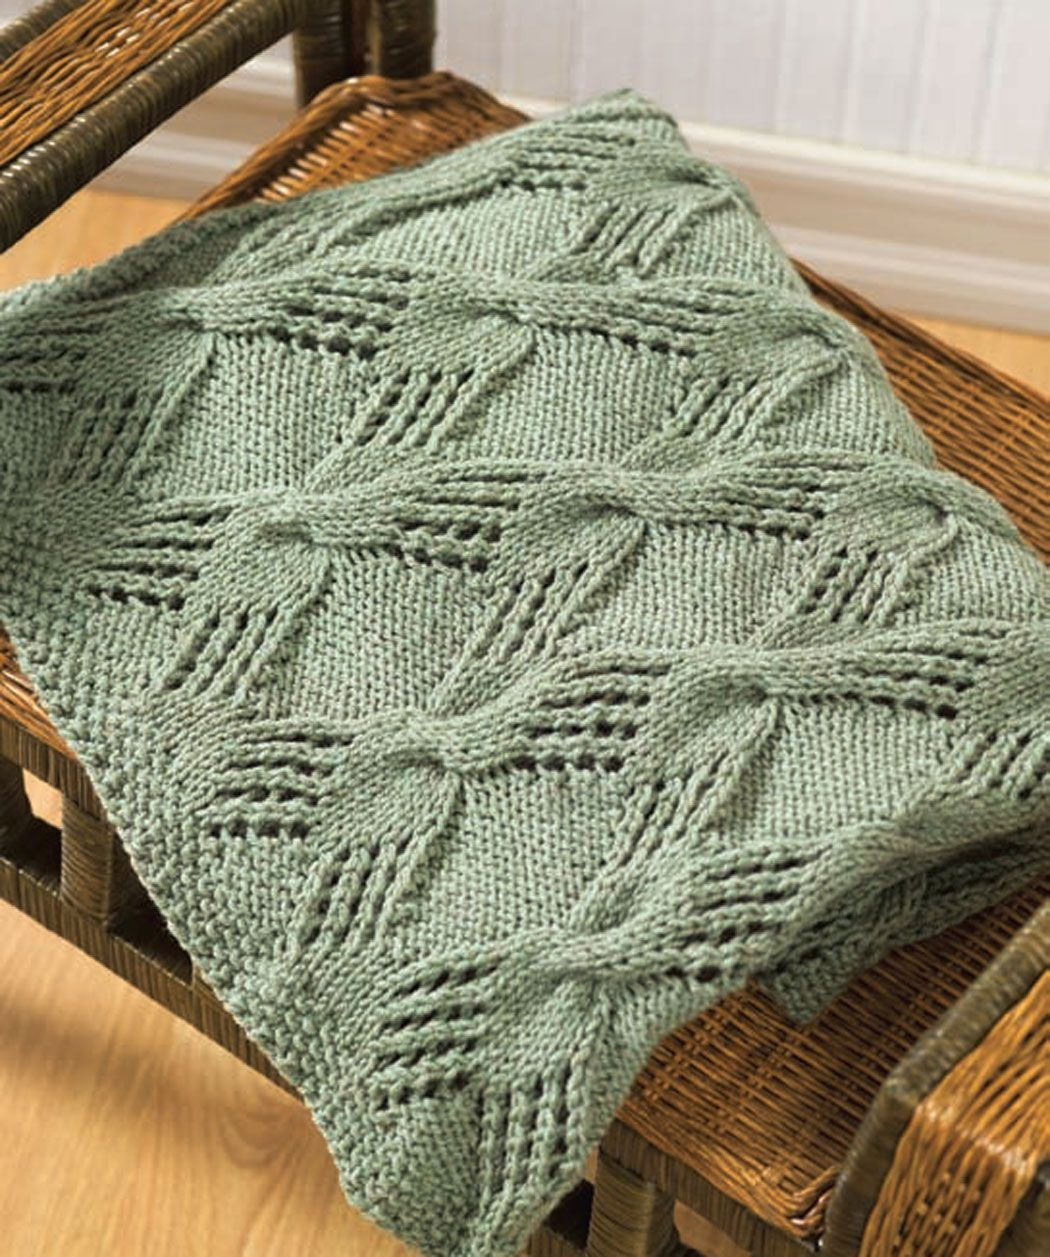 Cable Knit Throw. Knit with interesting cable pattern. Beautiful. In ...